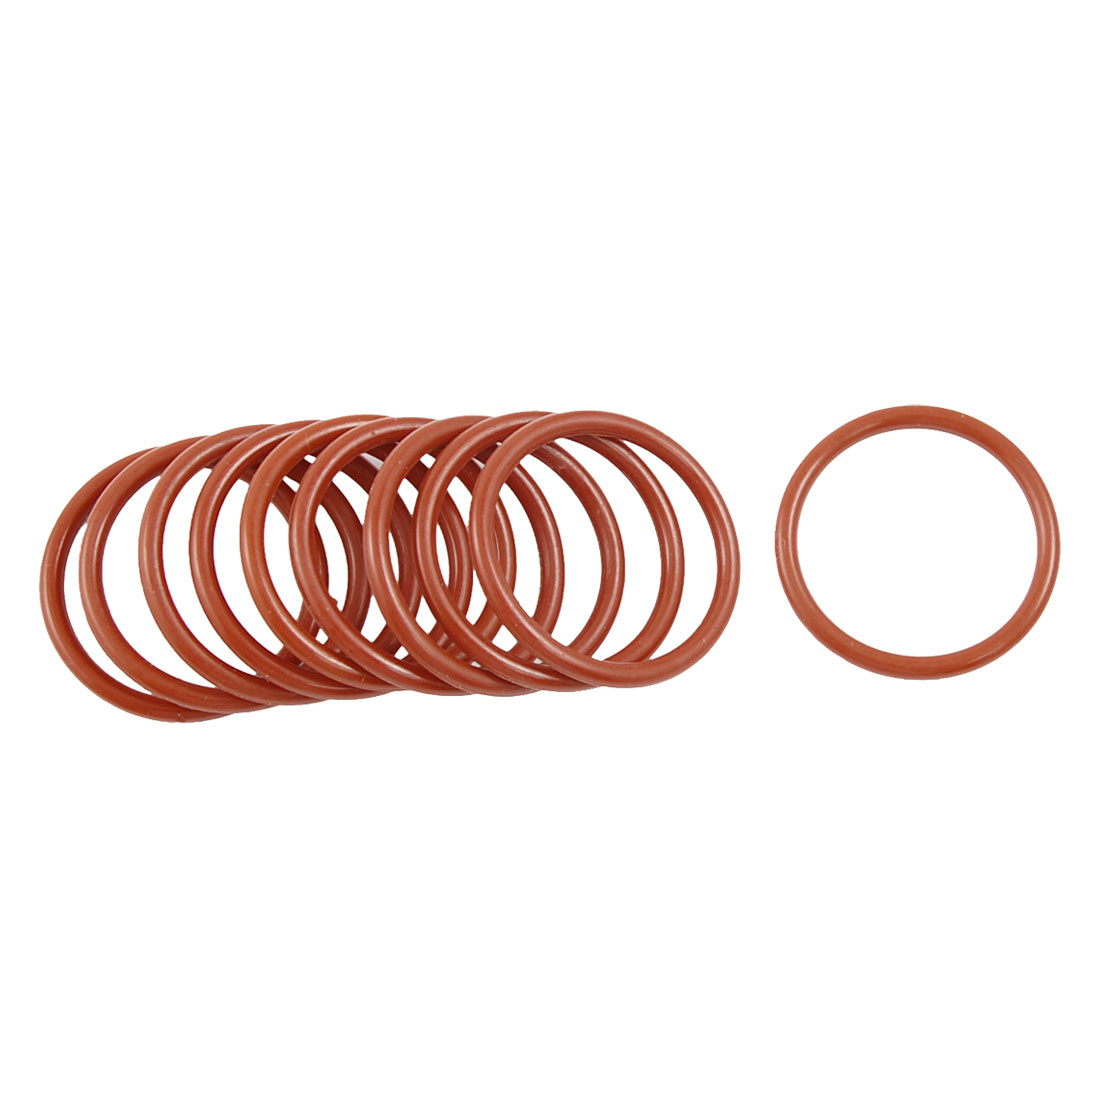 10 Pcs 28mm OD 2.5mm Thickness Dark Red Silicone O Rings Oil Seals Gasket